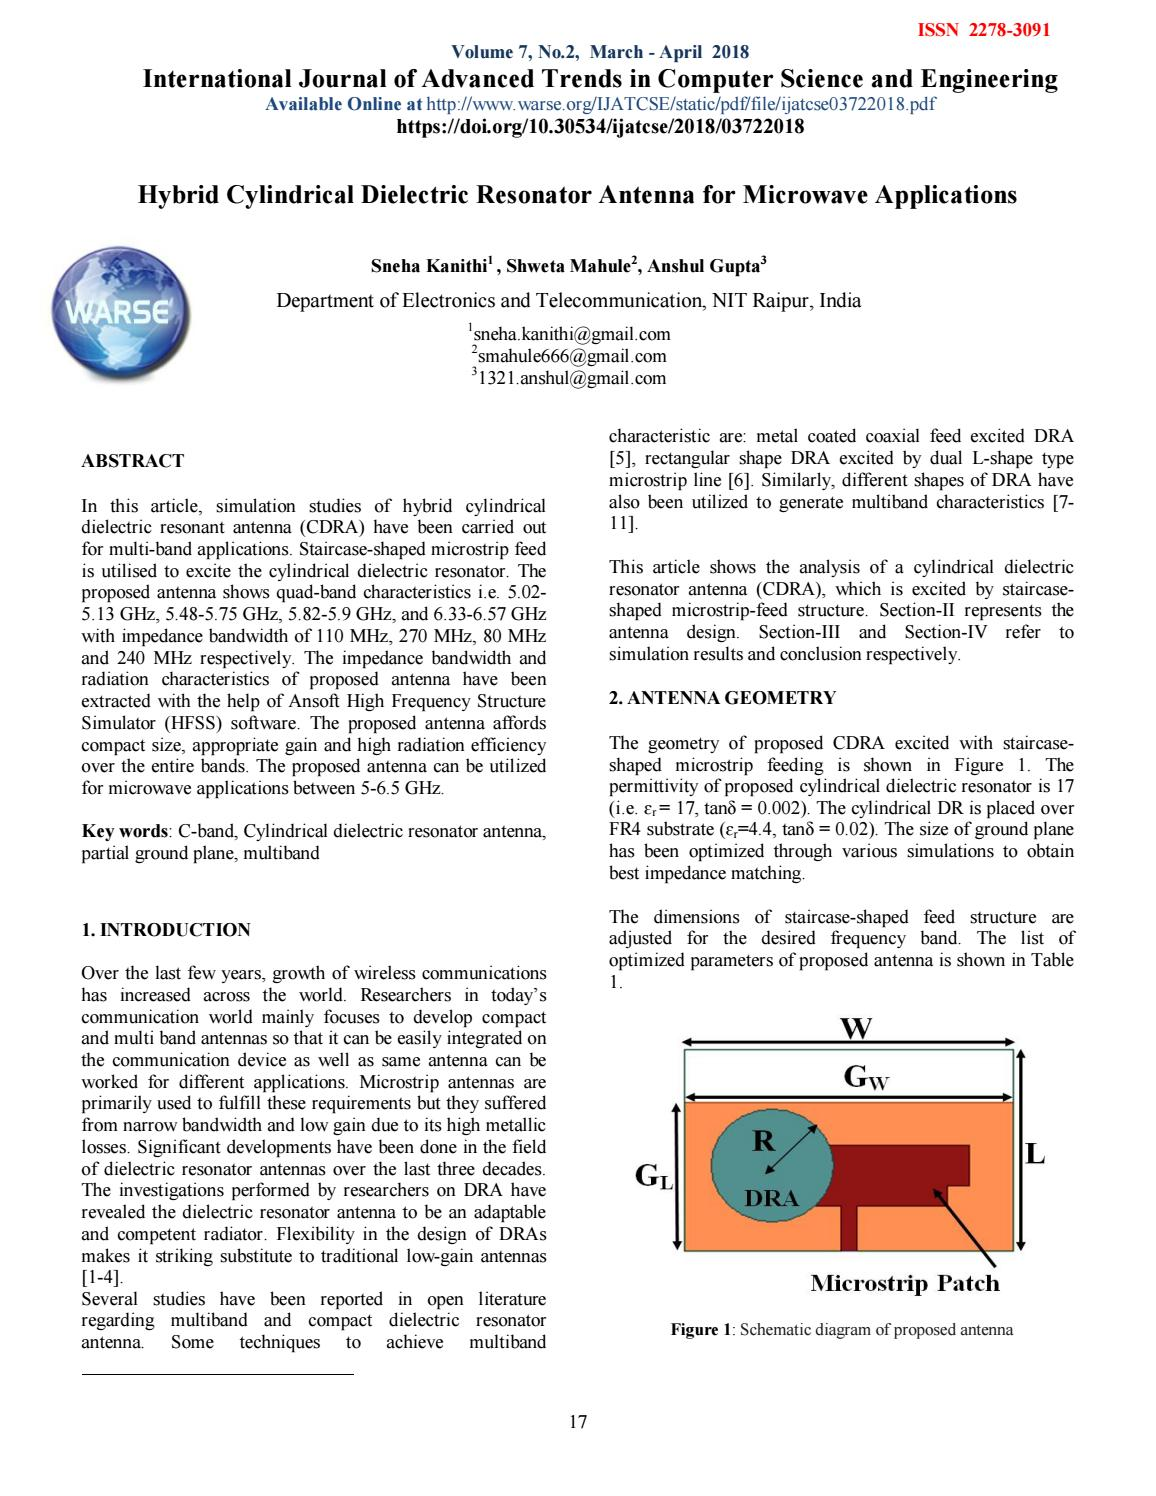 Hybrid Cylindrical Dielectric Resonator Antenna for Microwave